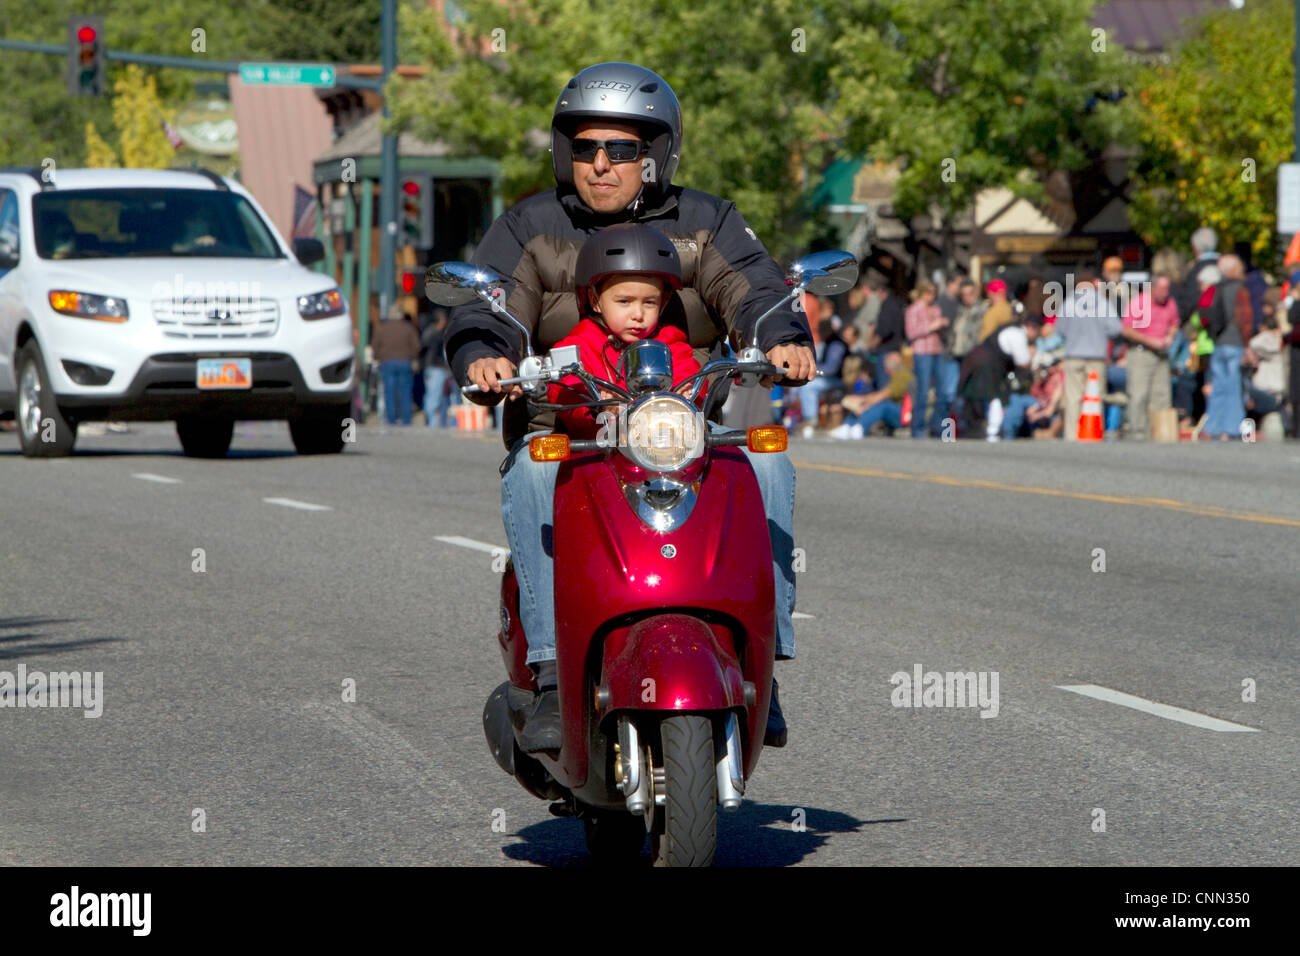 Father and son riding a scooter a the Trailing of the Sheep Parade on Main Street in Ketchum, Idaho, USA. - Stock Image